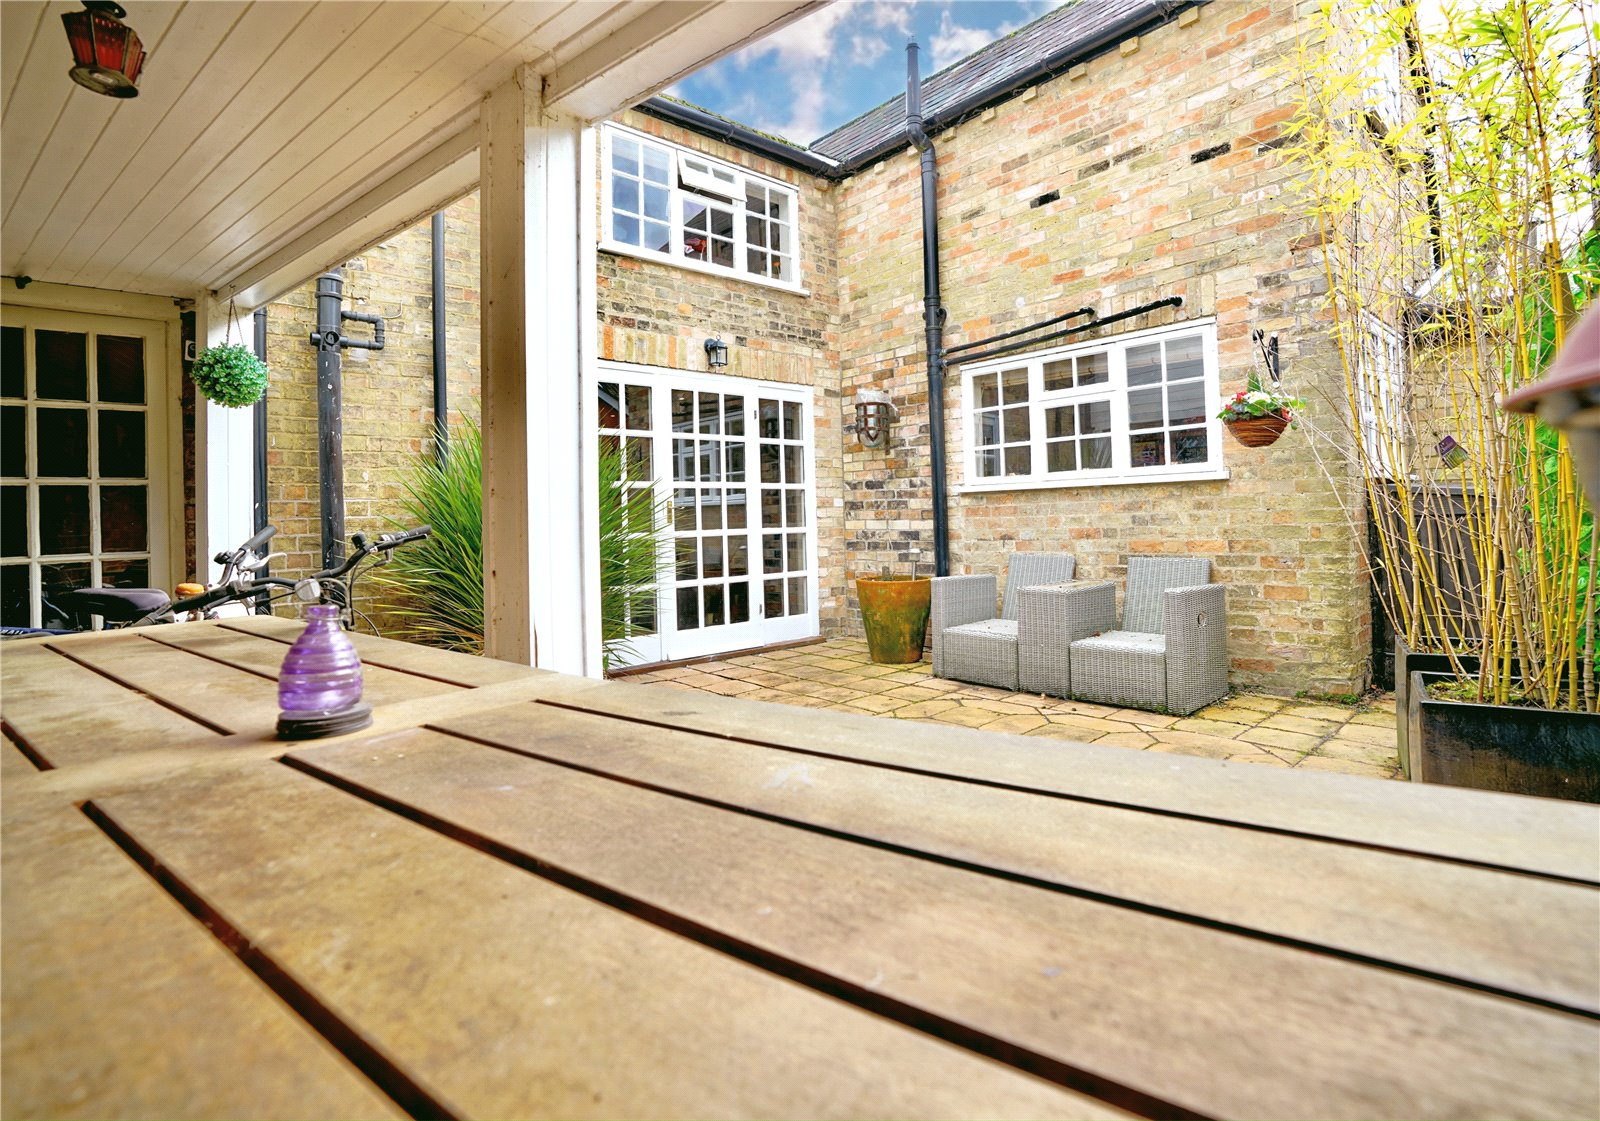 4 bed for sale in The Town, Great Staughton  - Property Image 9